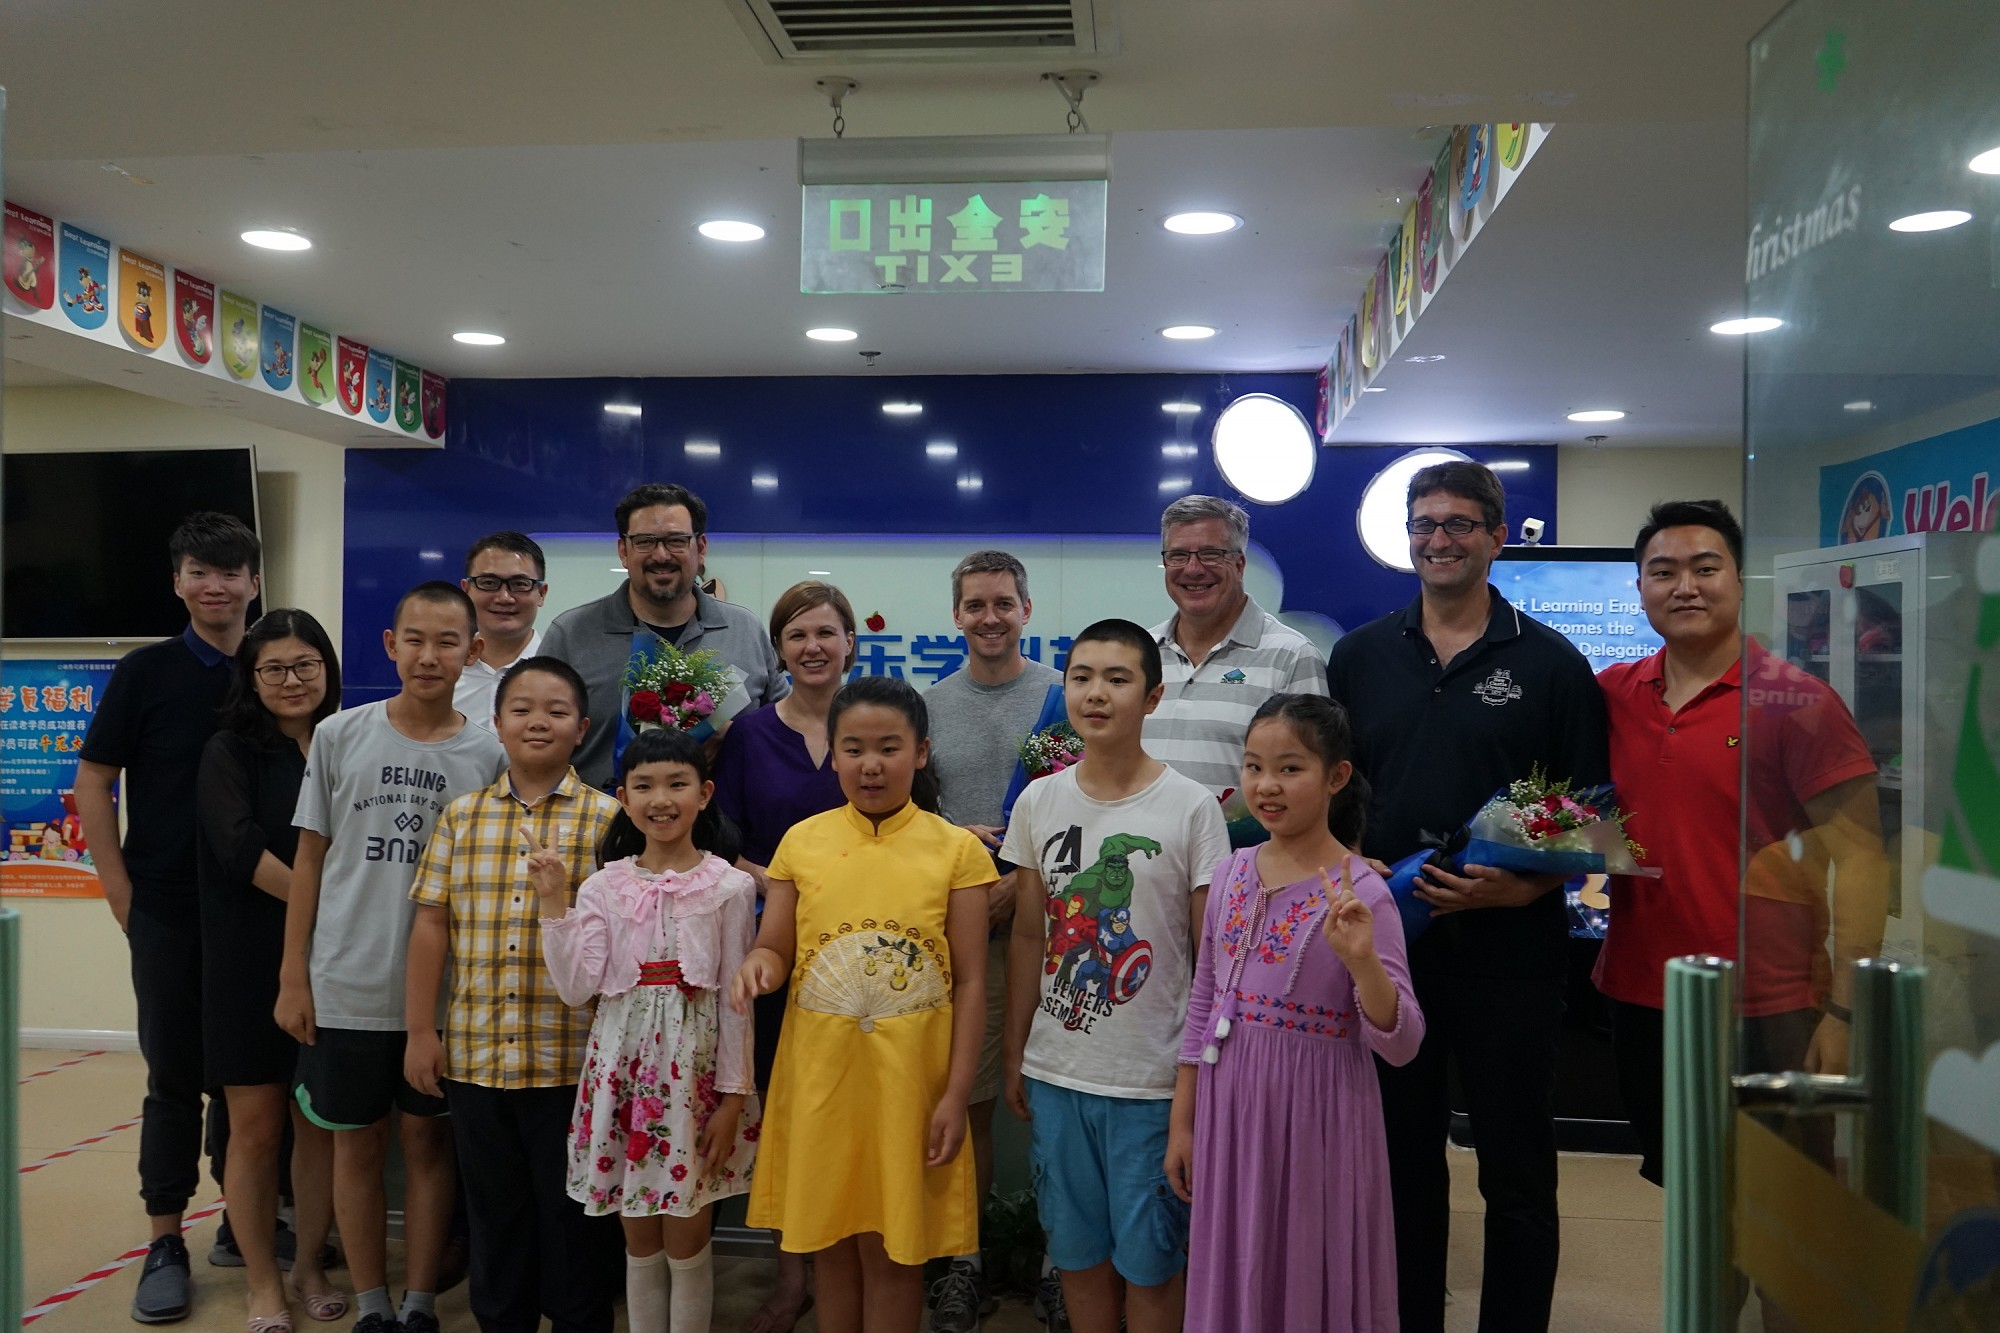 The delegation meets with young students during their visit to an English Learning Center in Beijing